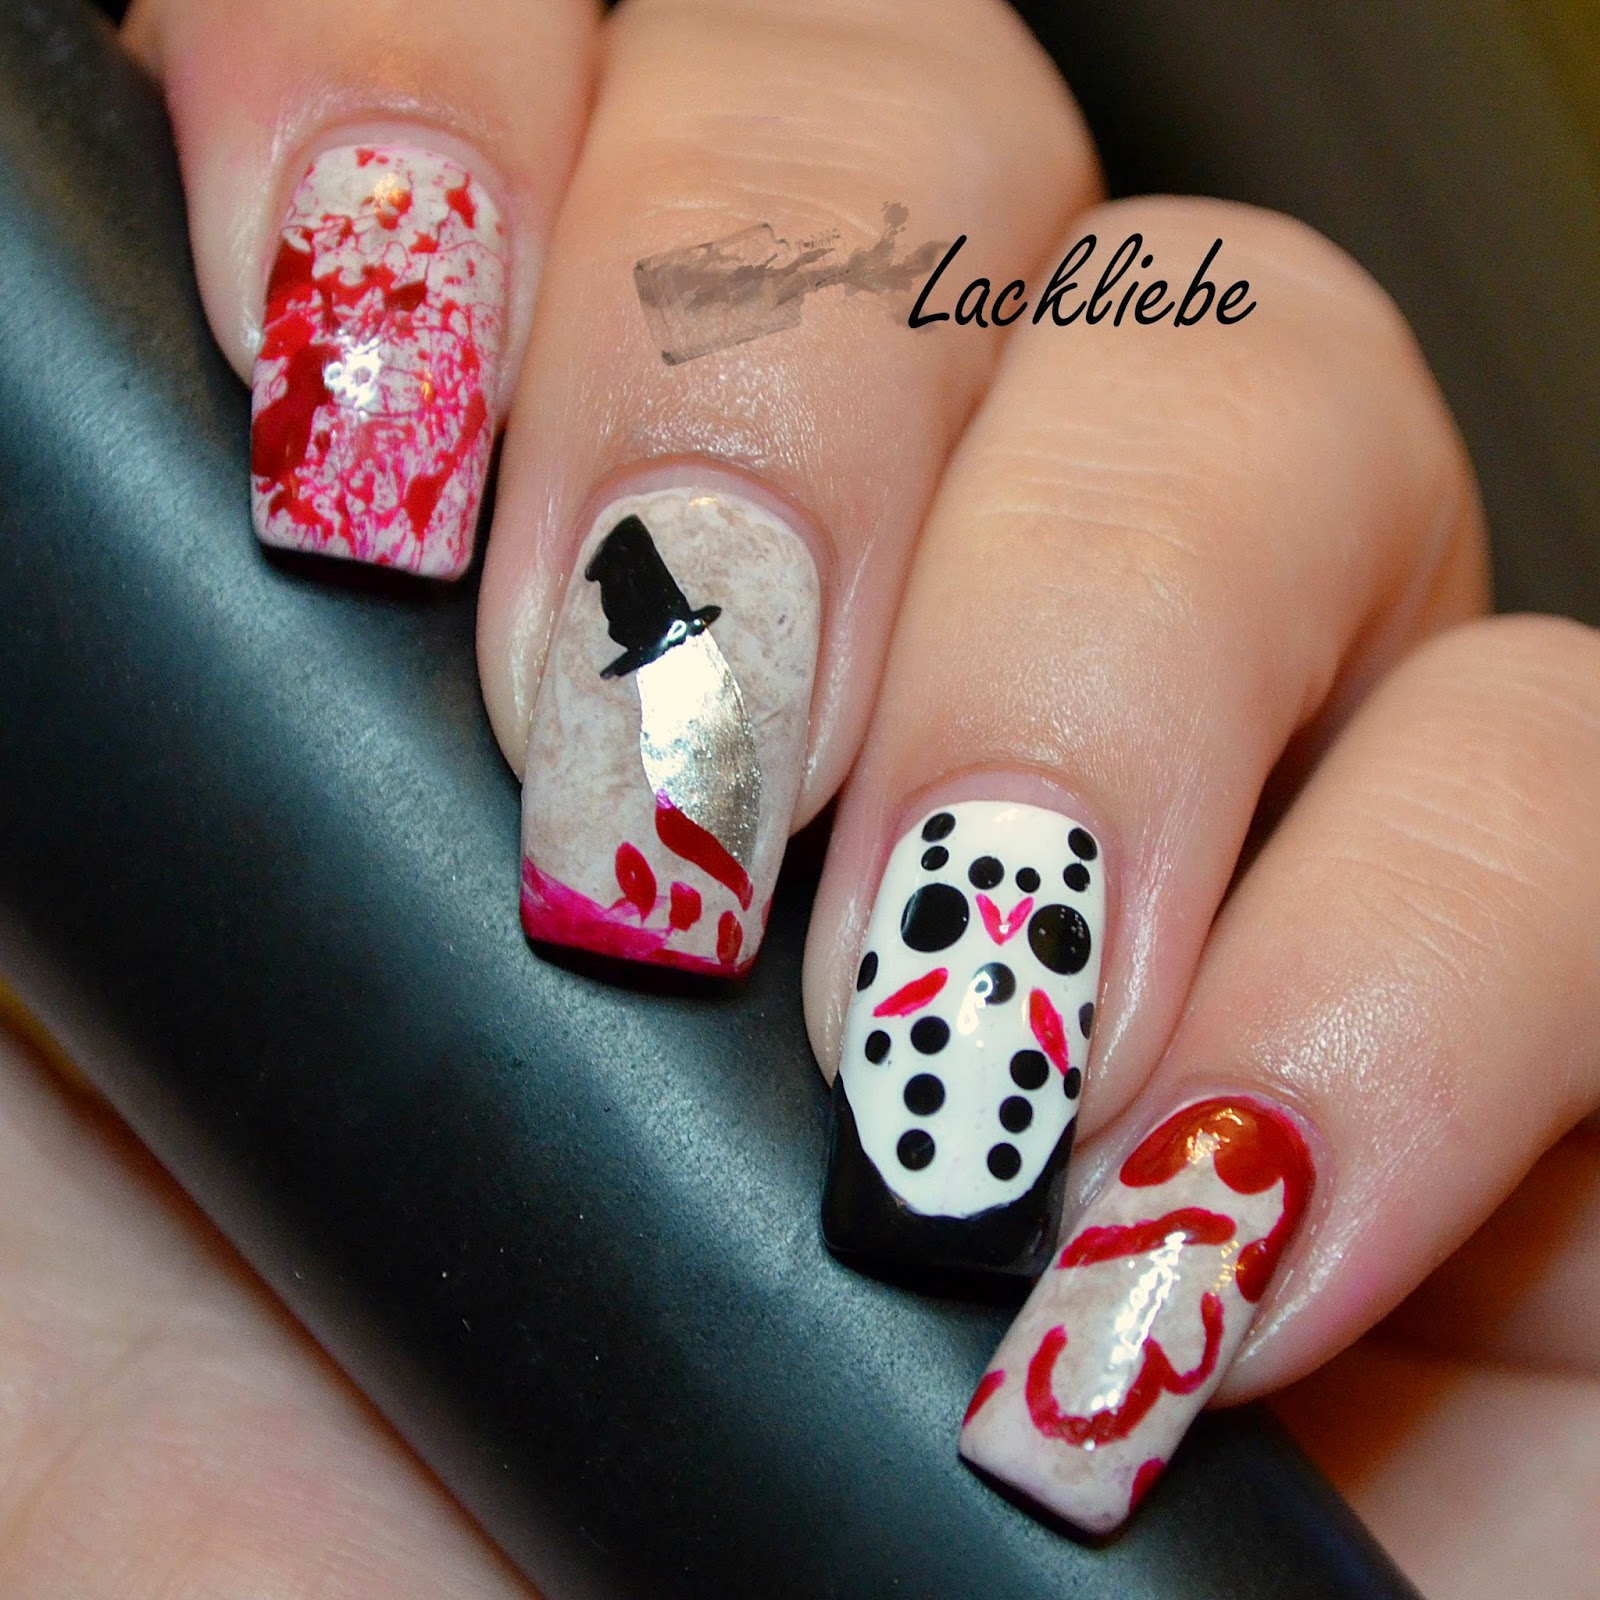 http://rainpow-nails.blogspot.de/2014/10/halloween-freitag-der-13.html